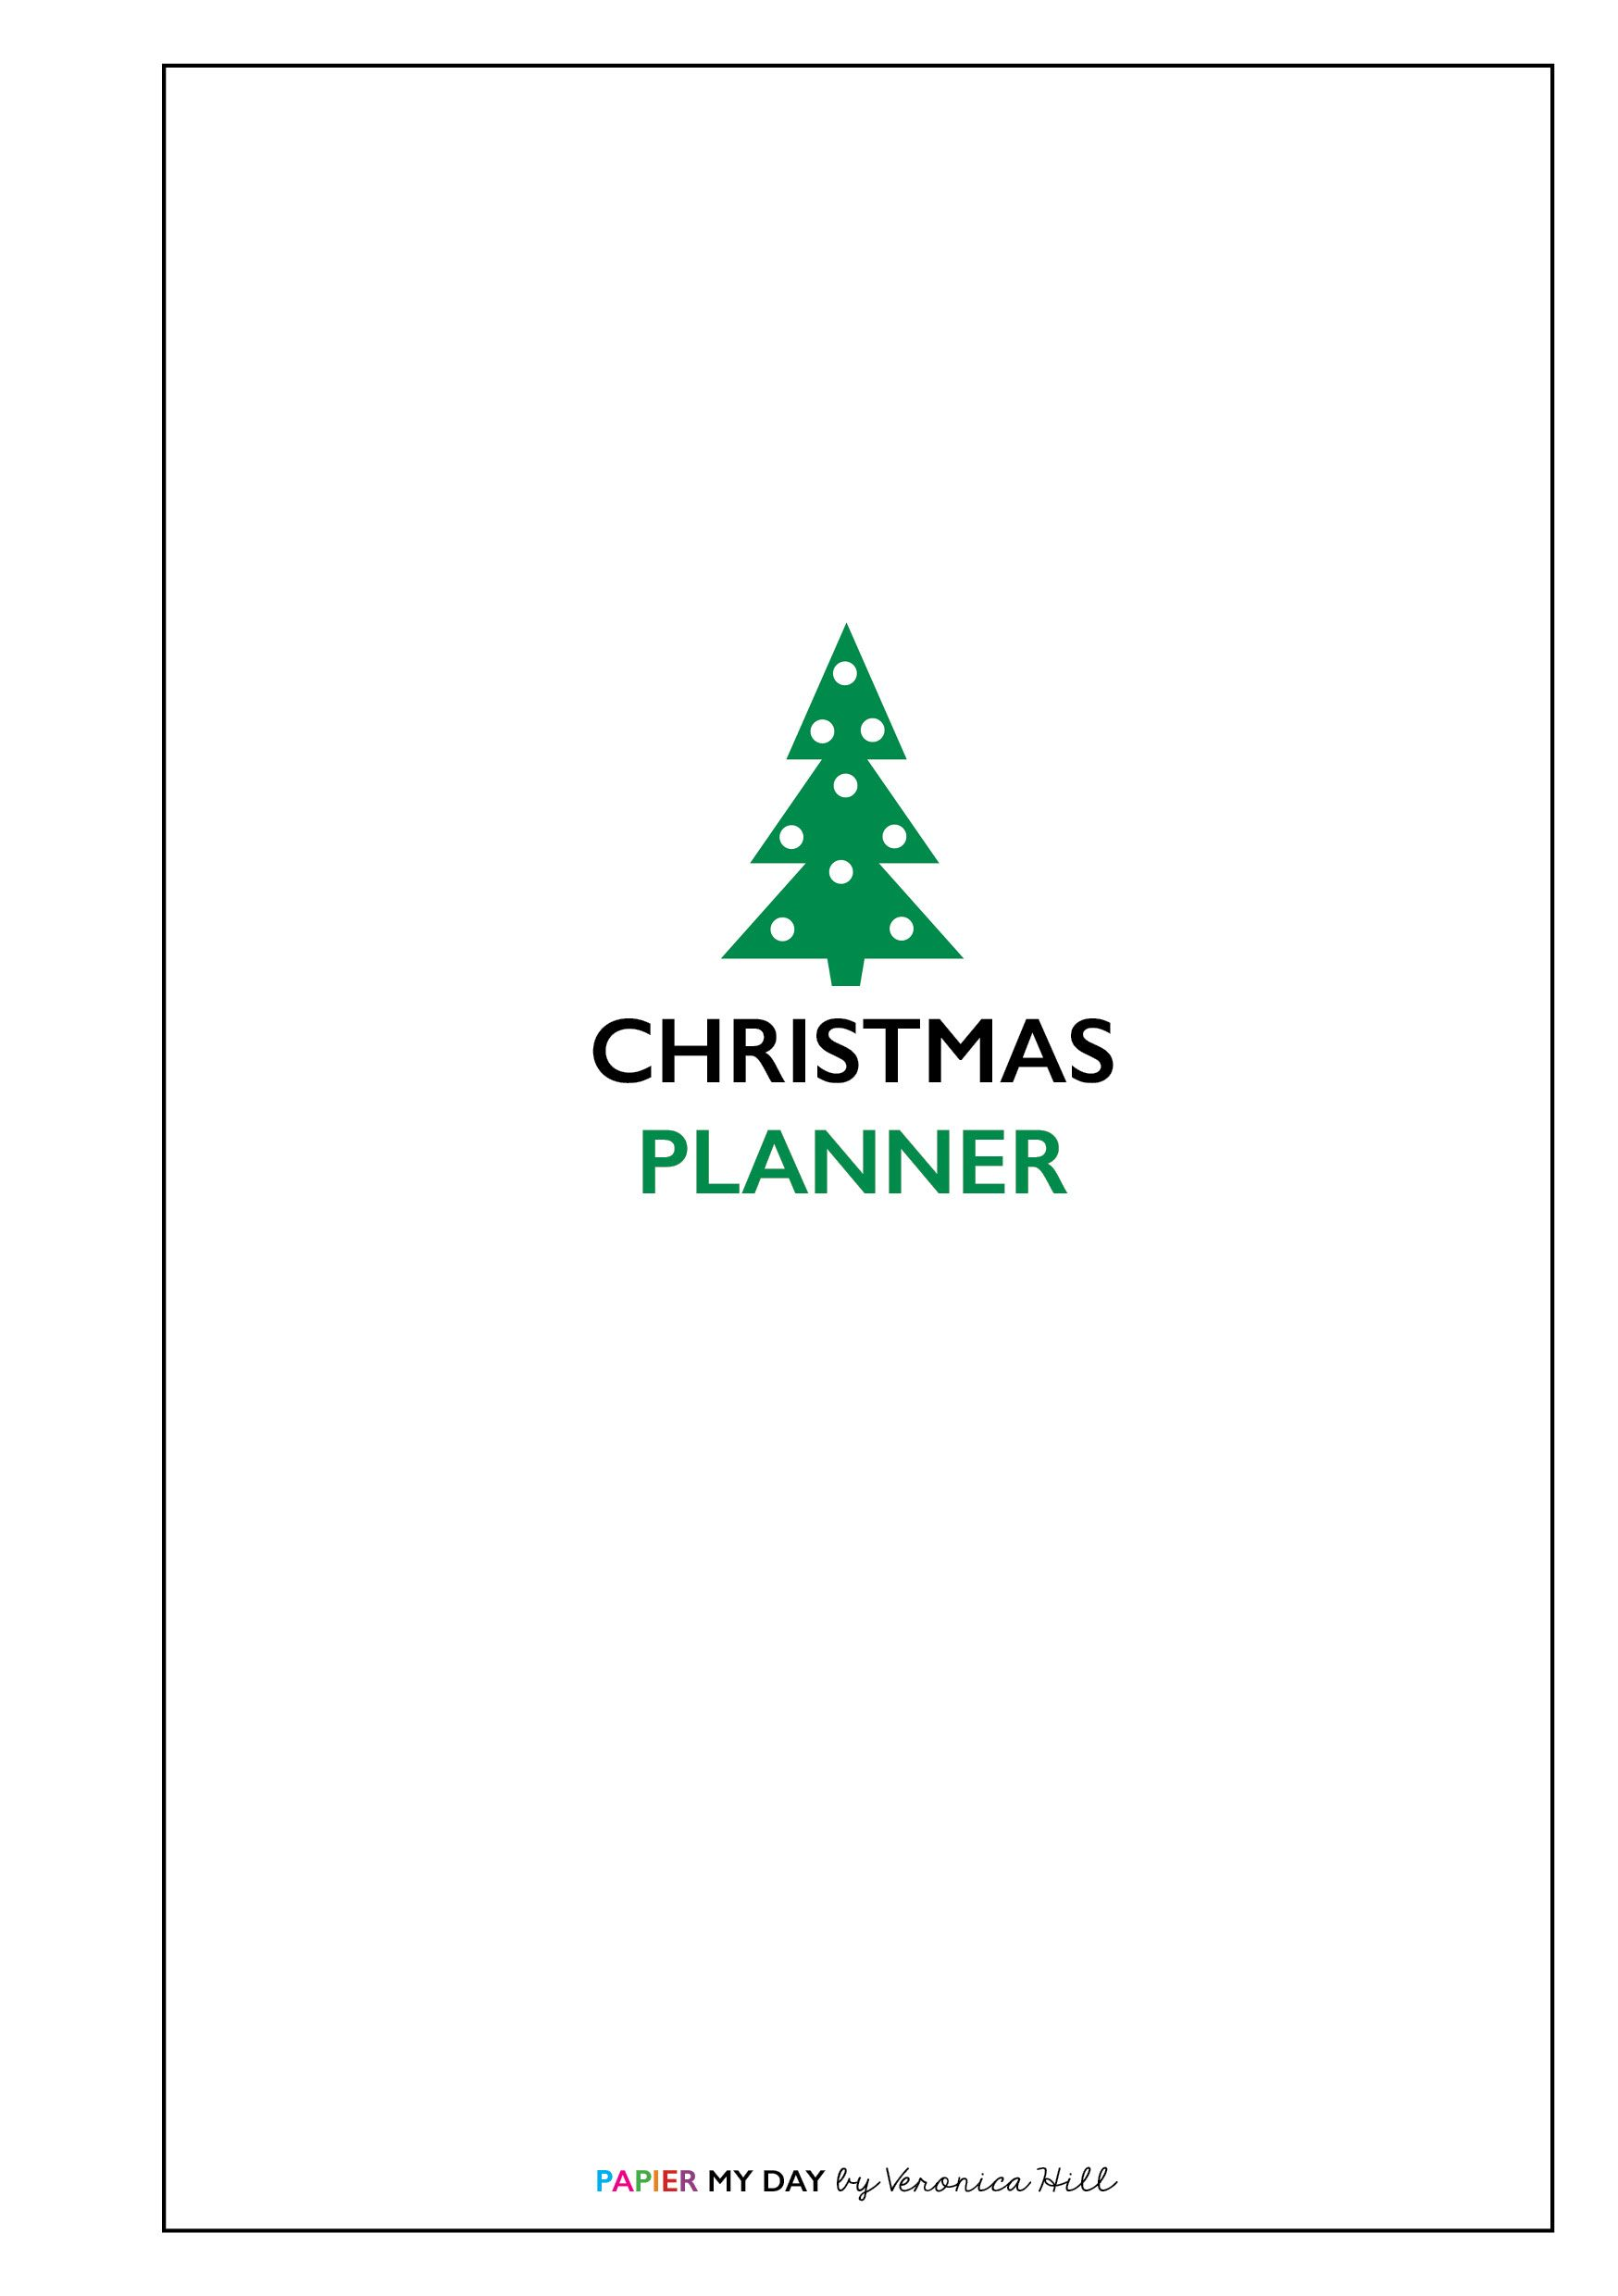 This free A5 Filofax Christmas planner printable from